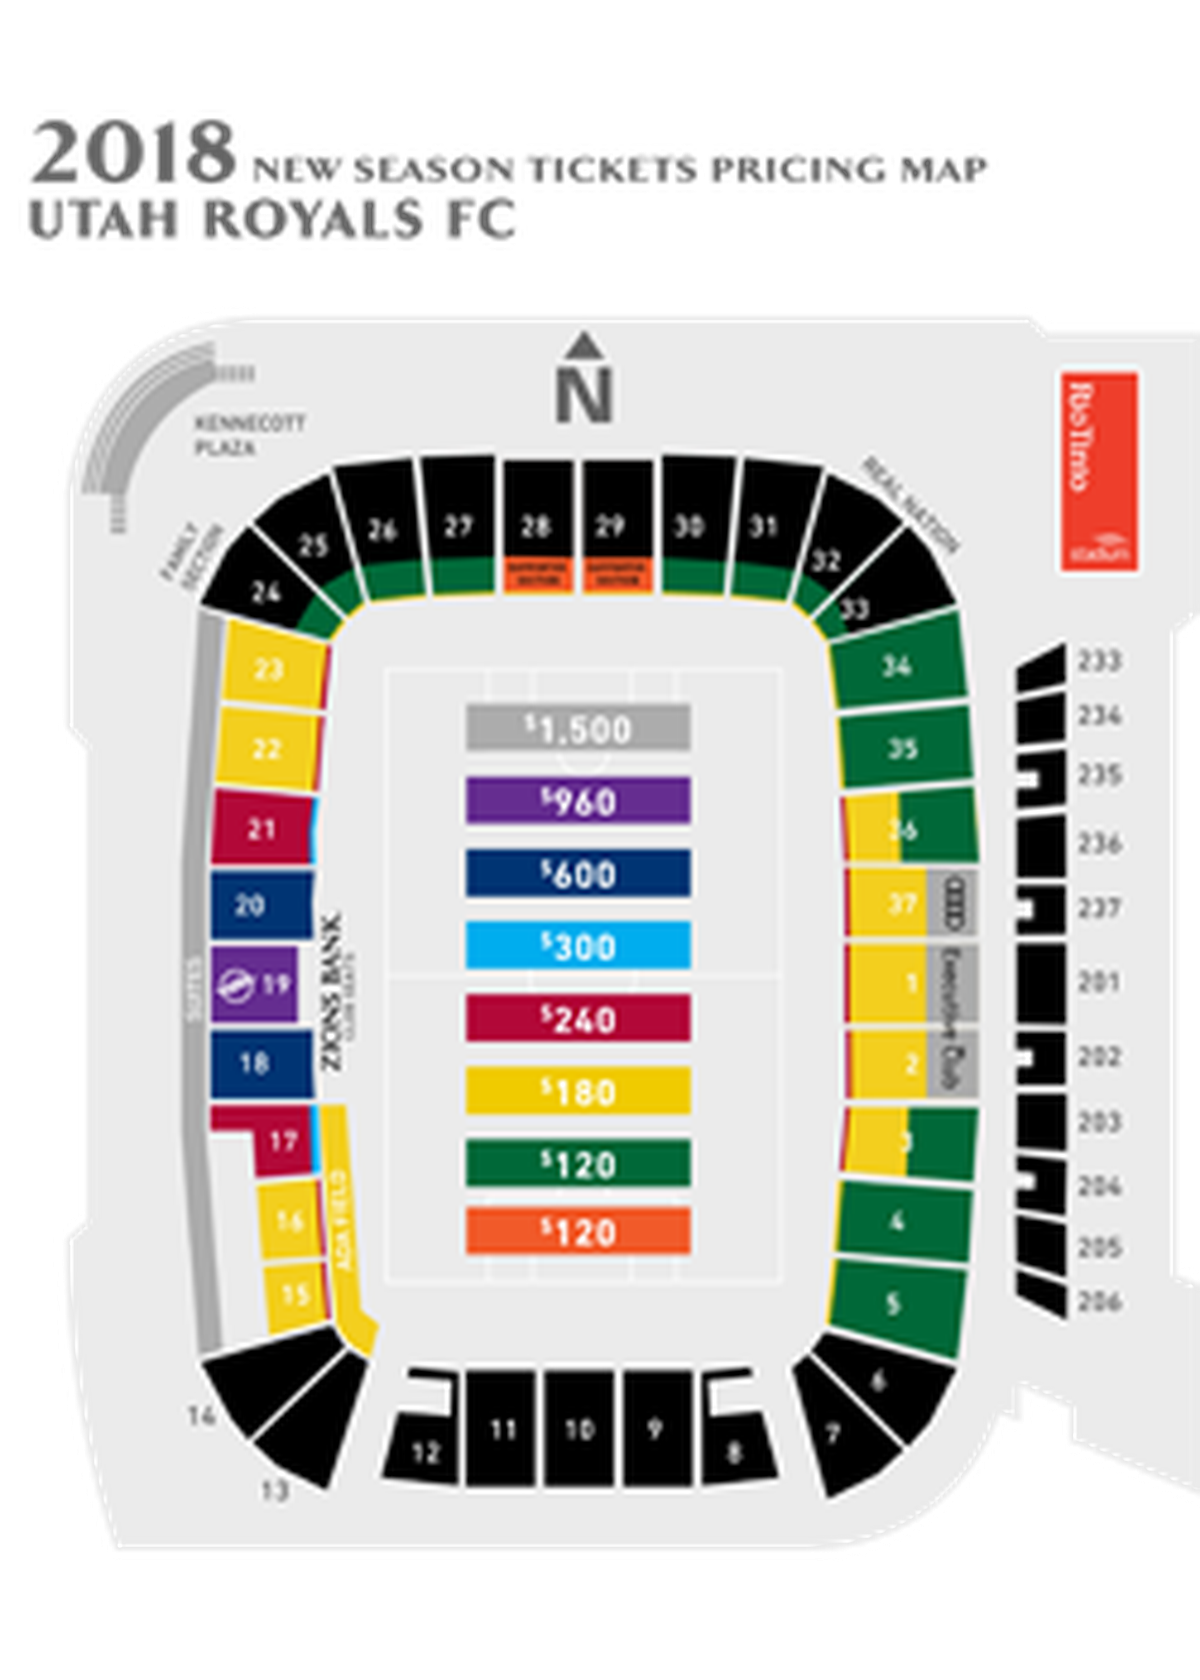 Season tickets start at $120 and that price remains for much of big swathes of the stadium Interestingly supporters are being placed in the north goal